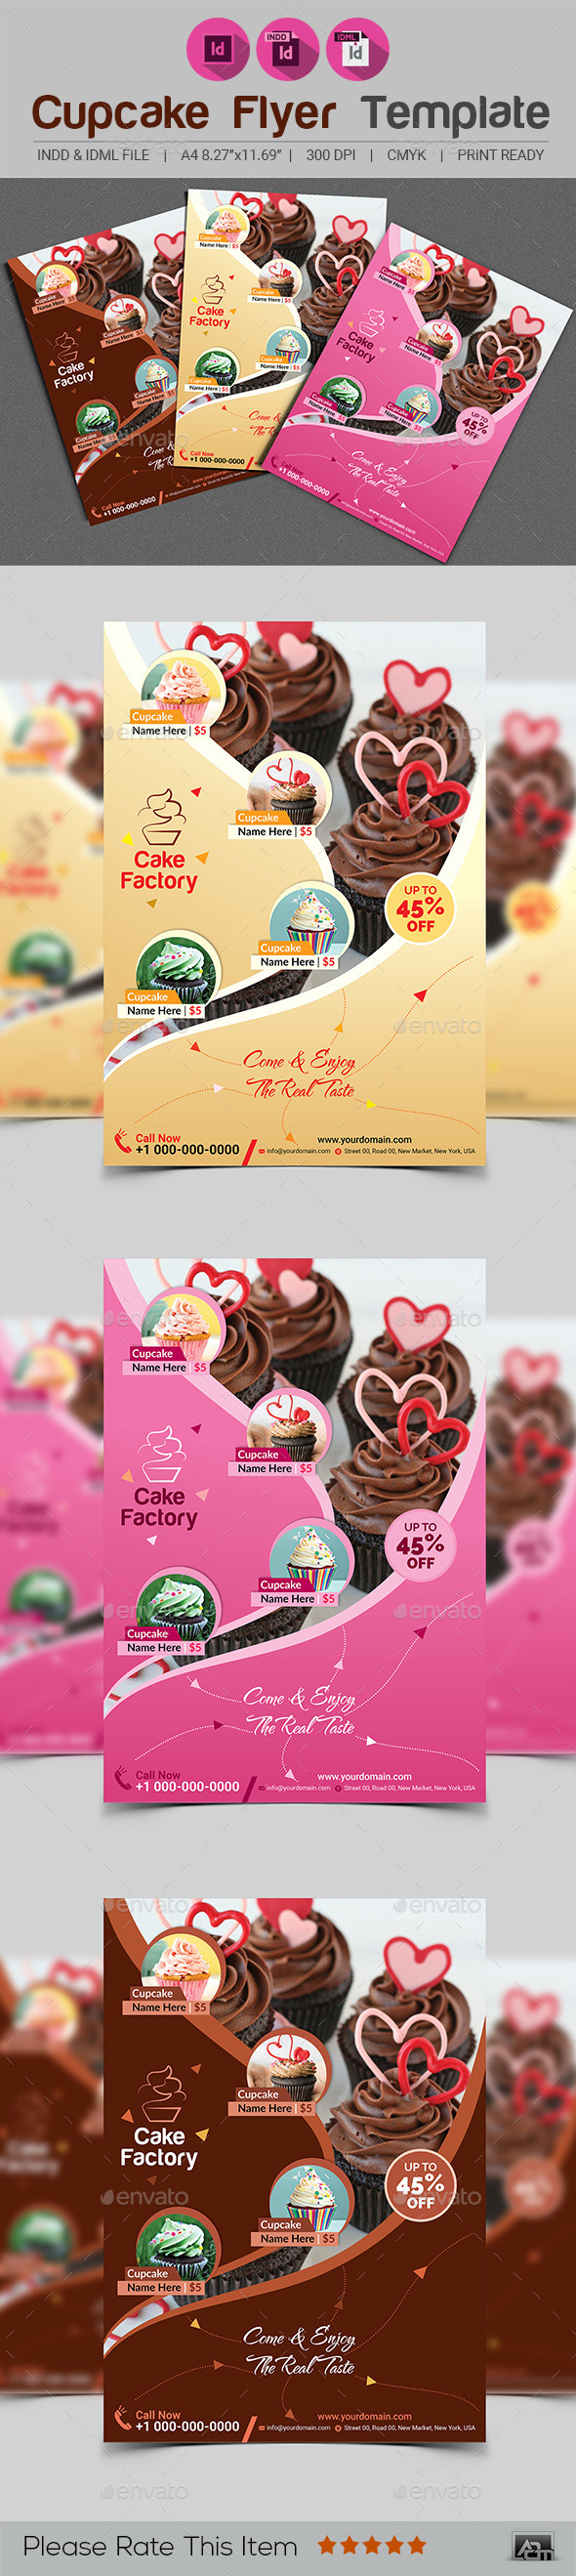 Cupcake Flyer Template V2 - Restaurant Flyers